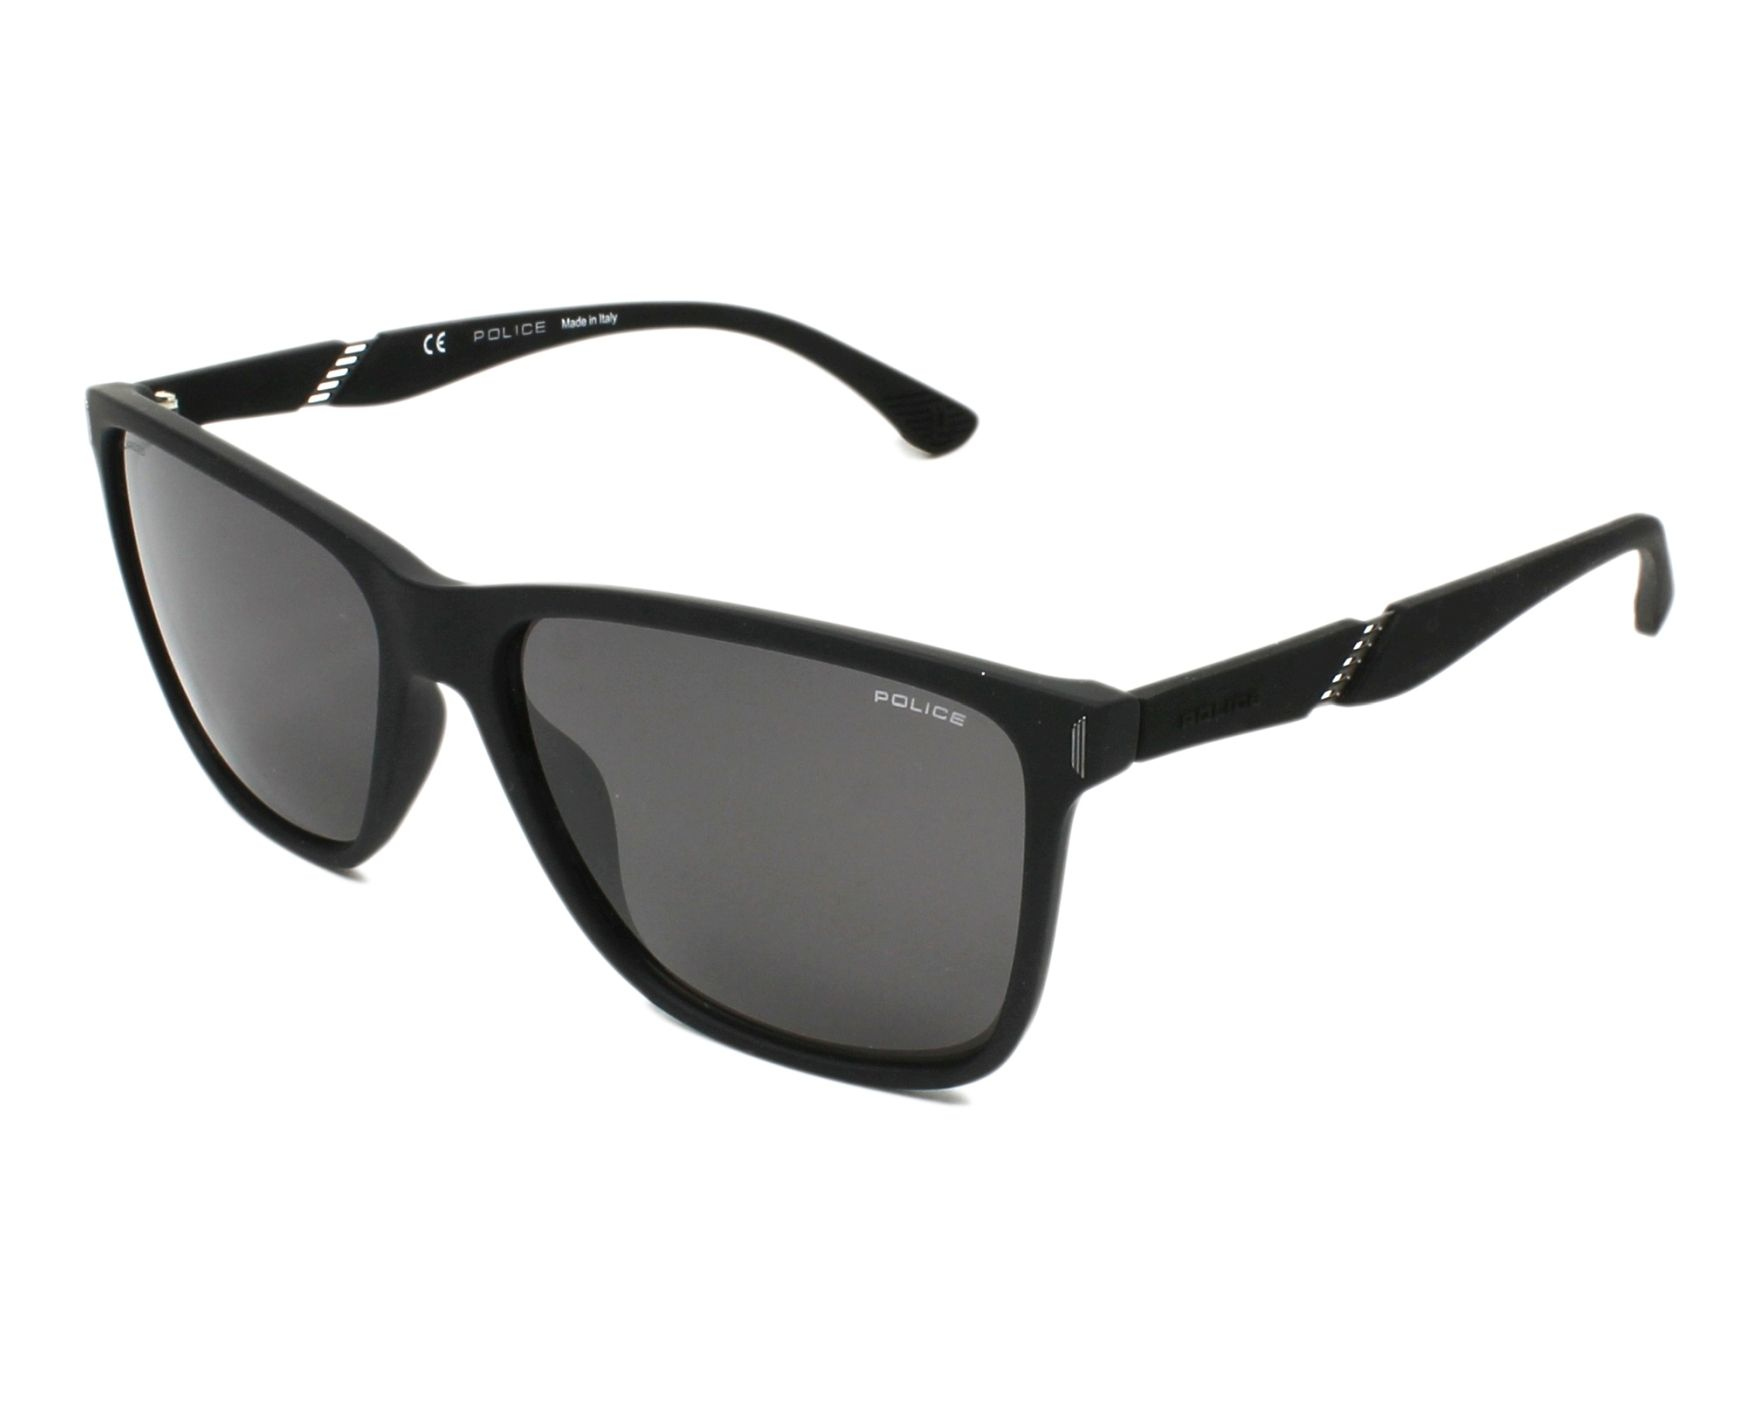 53cb4ed721 Sunglasses Police SPL-529 6AAP 58-16 Black profile view